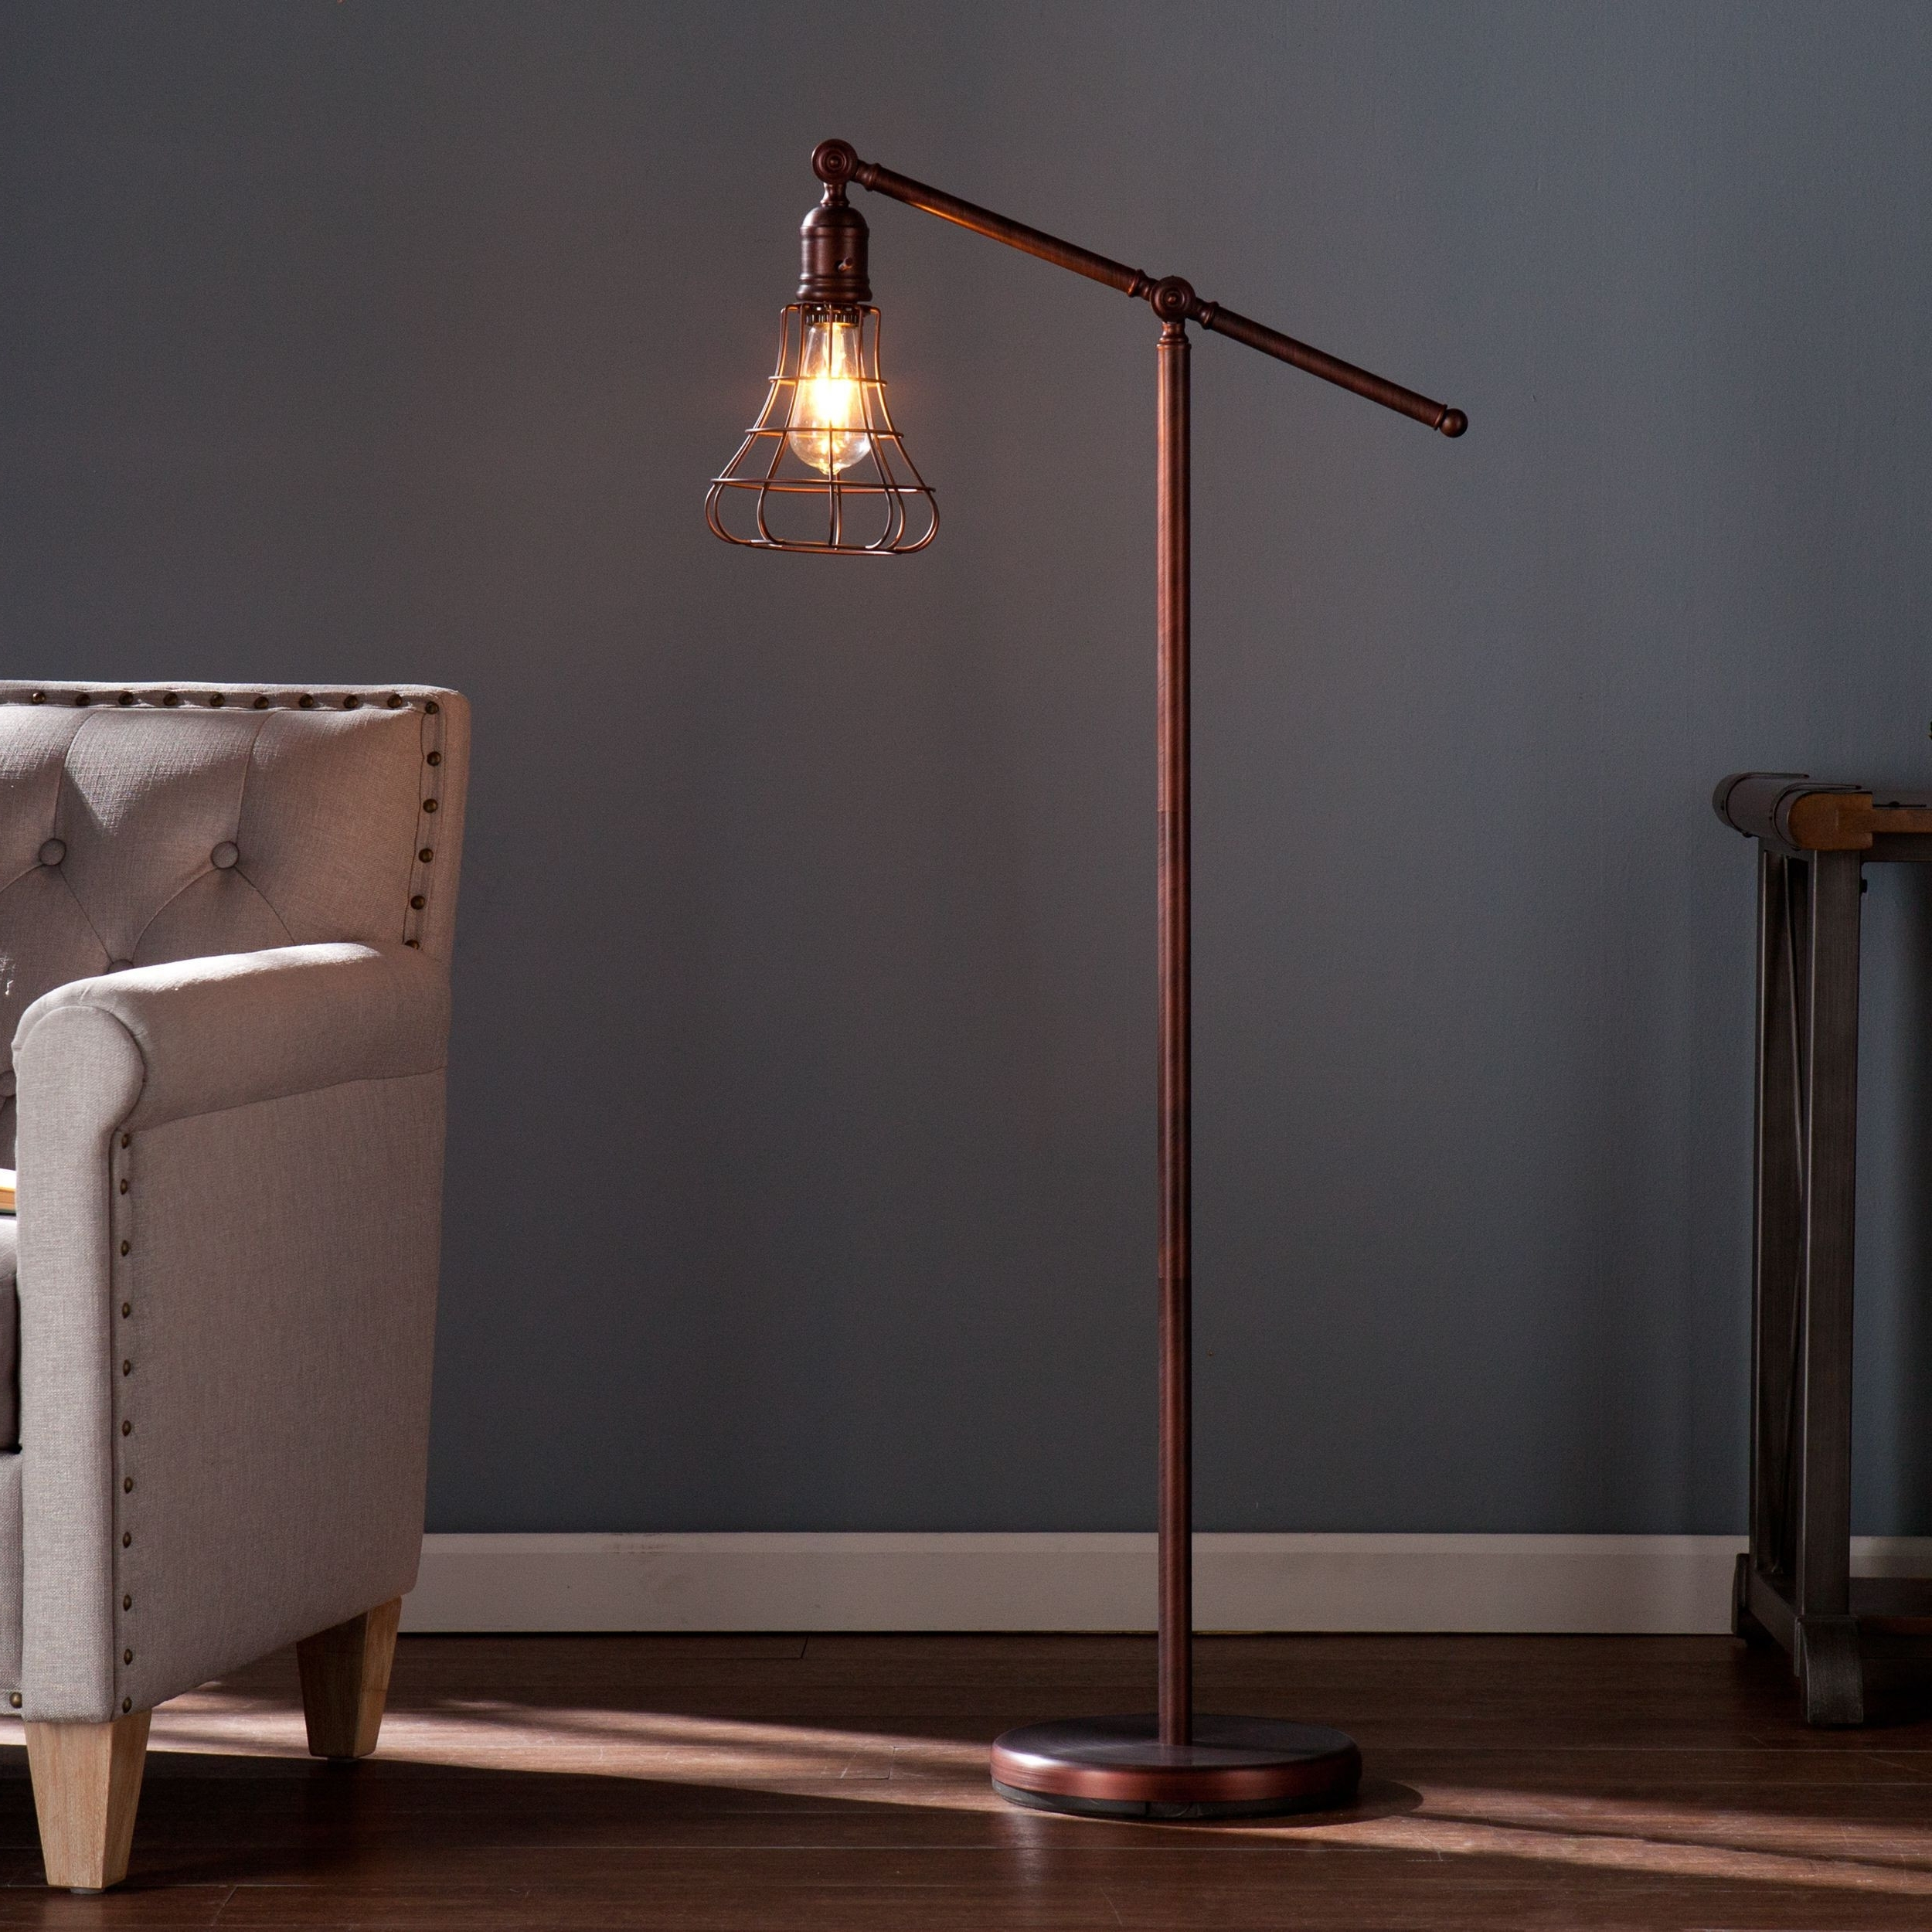 Newest Lamp : Rustic Table Lamps Living Room Rustic Living Room Table Lamps With Regard To Rustic Living Room Table Lamps (View 7 of 20)